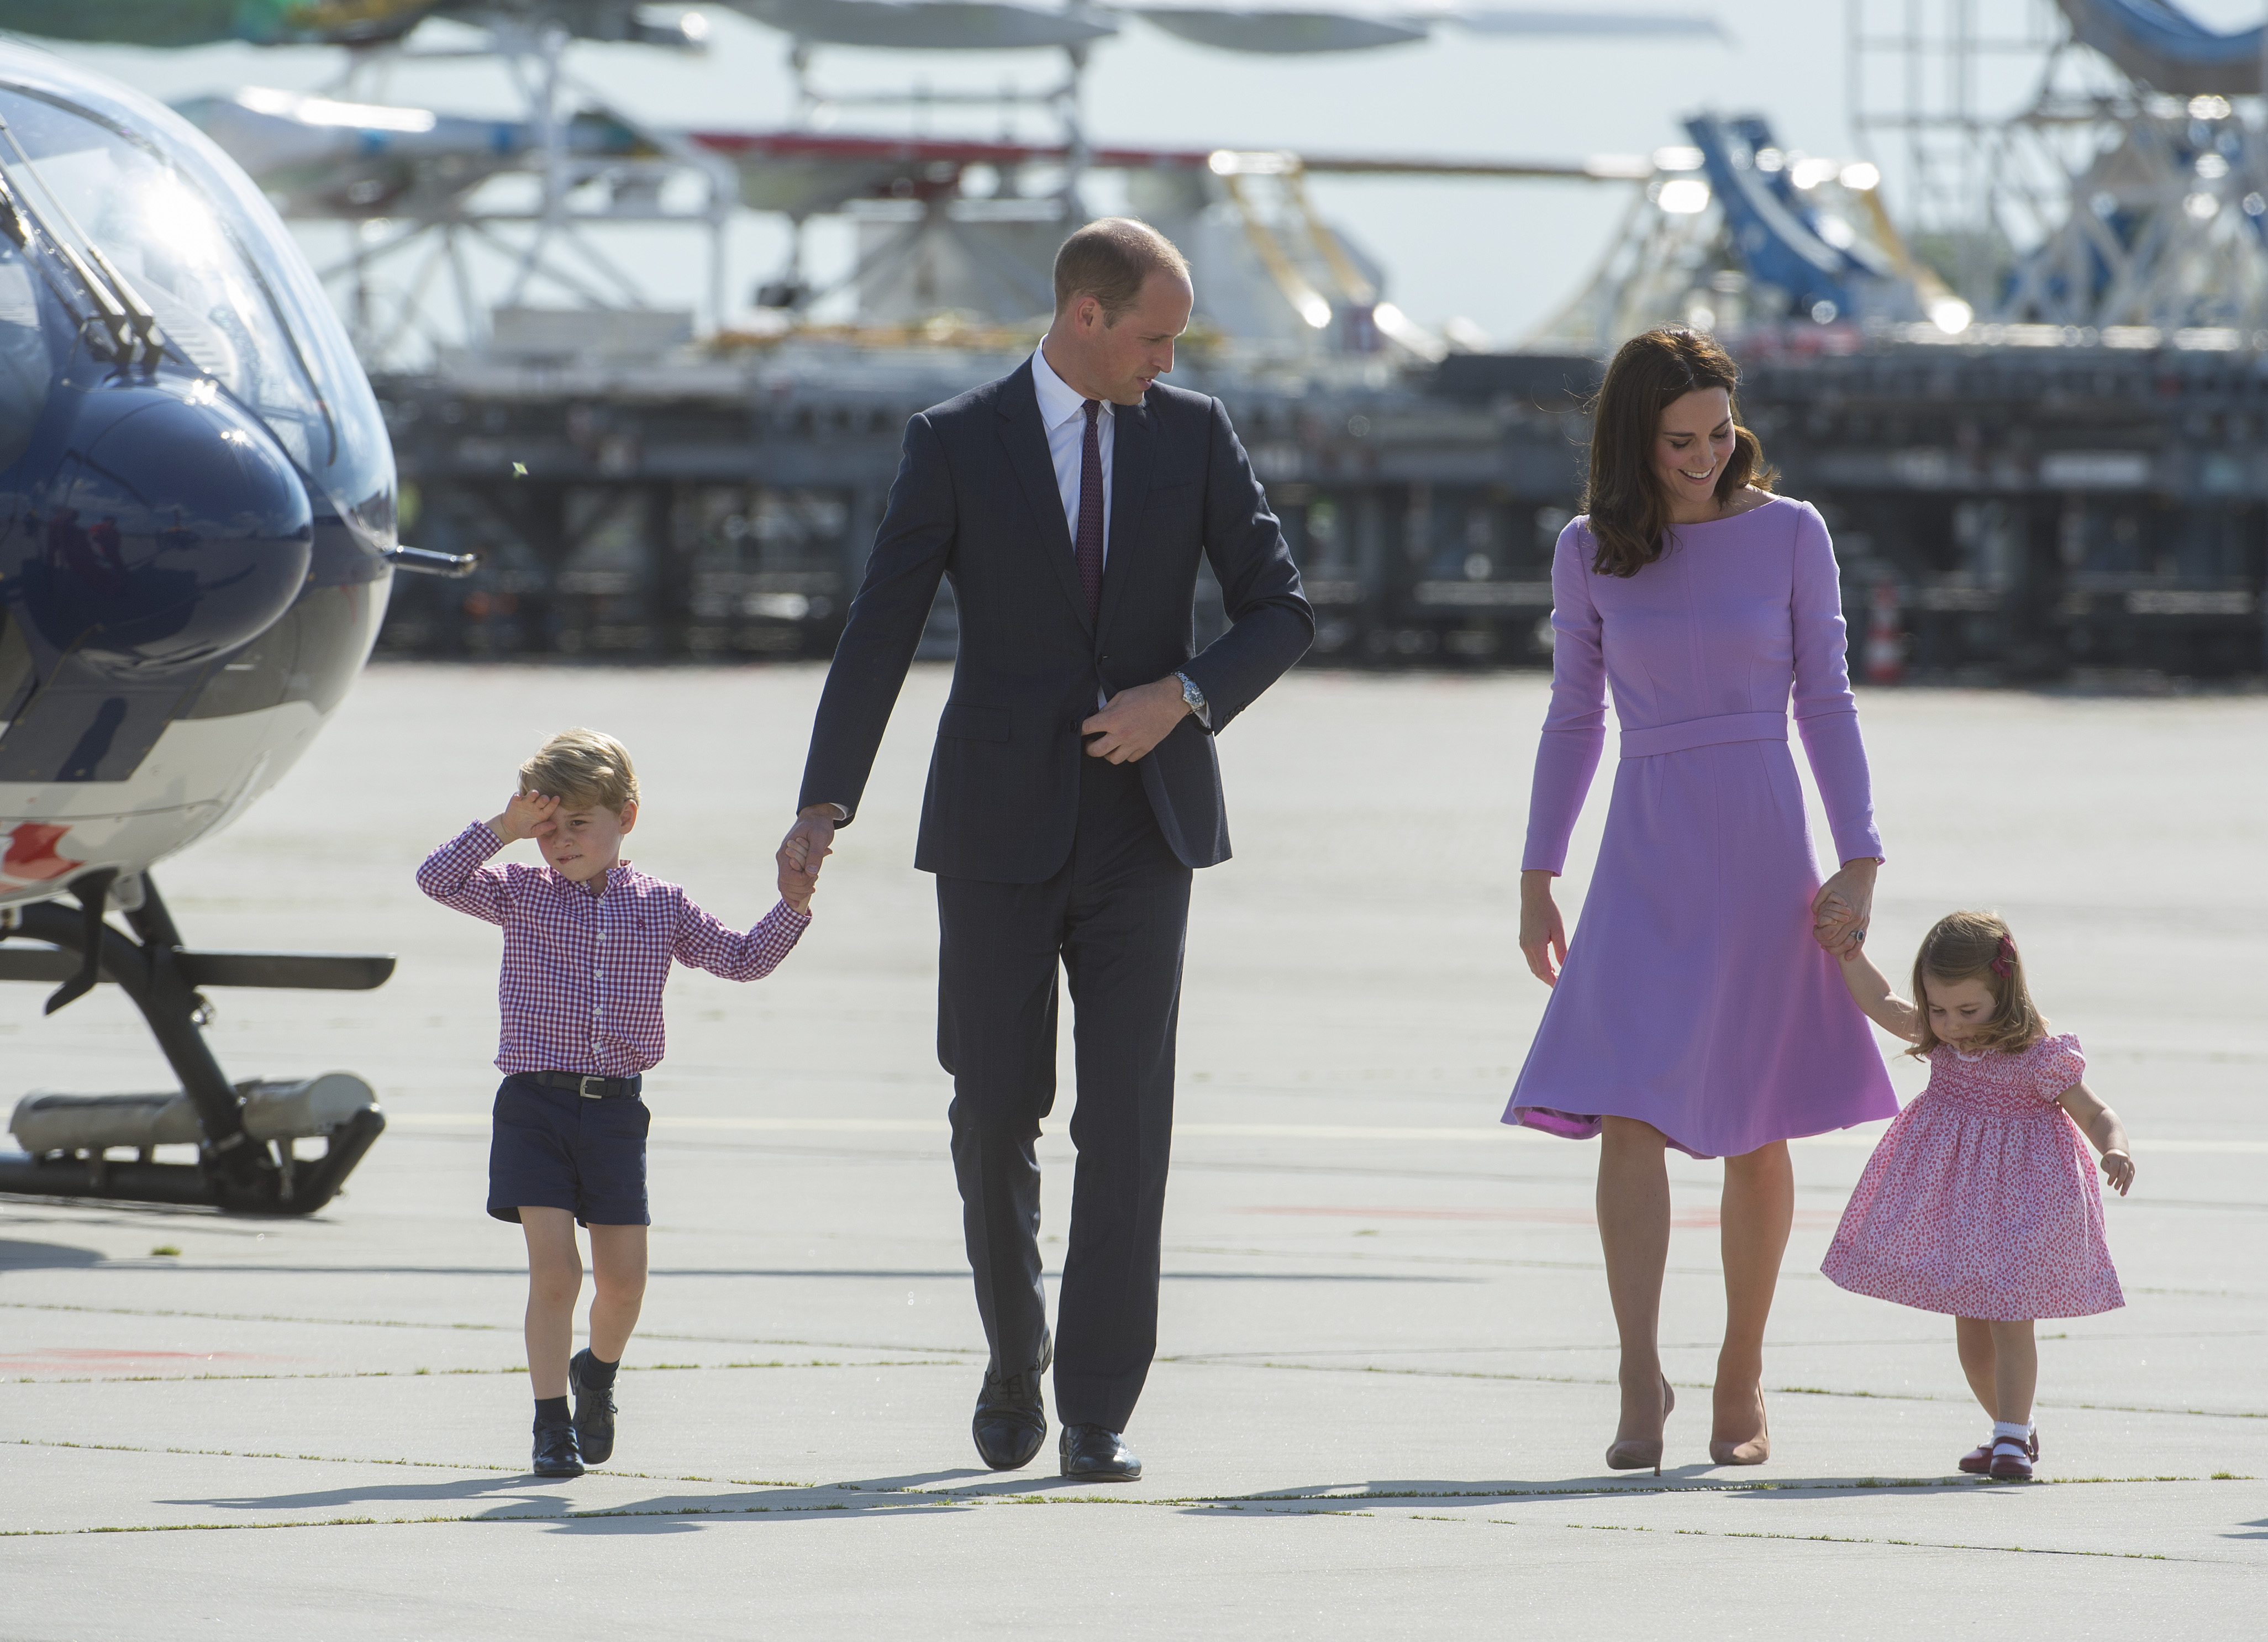 Prince William, Duke of Cambridge, Prince George of Cambridge, Princess Charlotte of Cambridge and Catherine, Duchess of Cambridge depart from Hamburg airport on the last day of their official visit to Poland and Germany on July 21, 2017 in Hamburg, Germany.